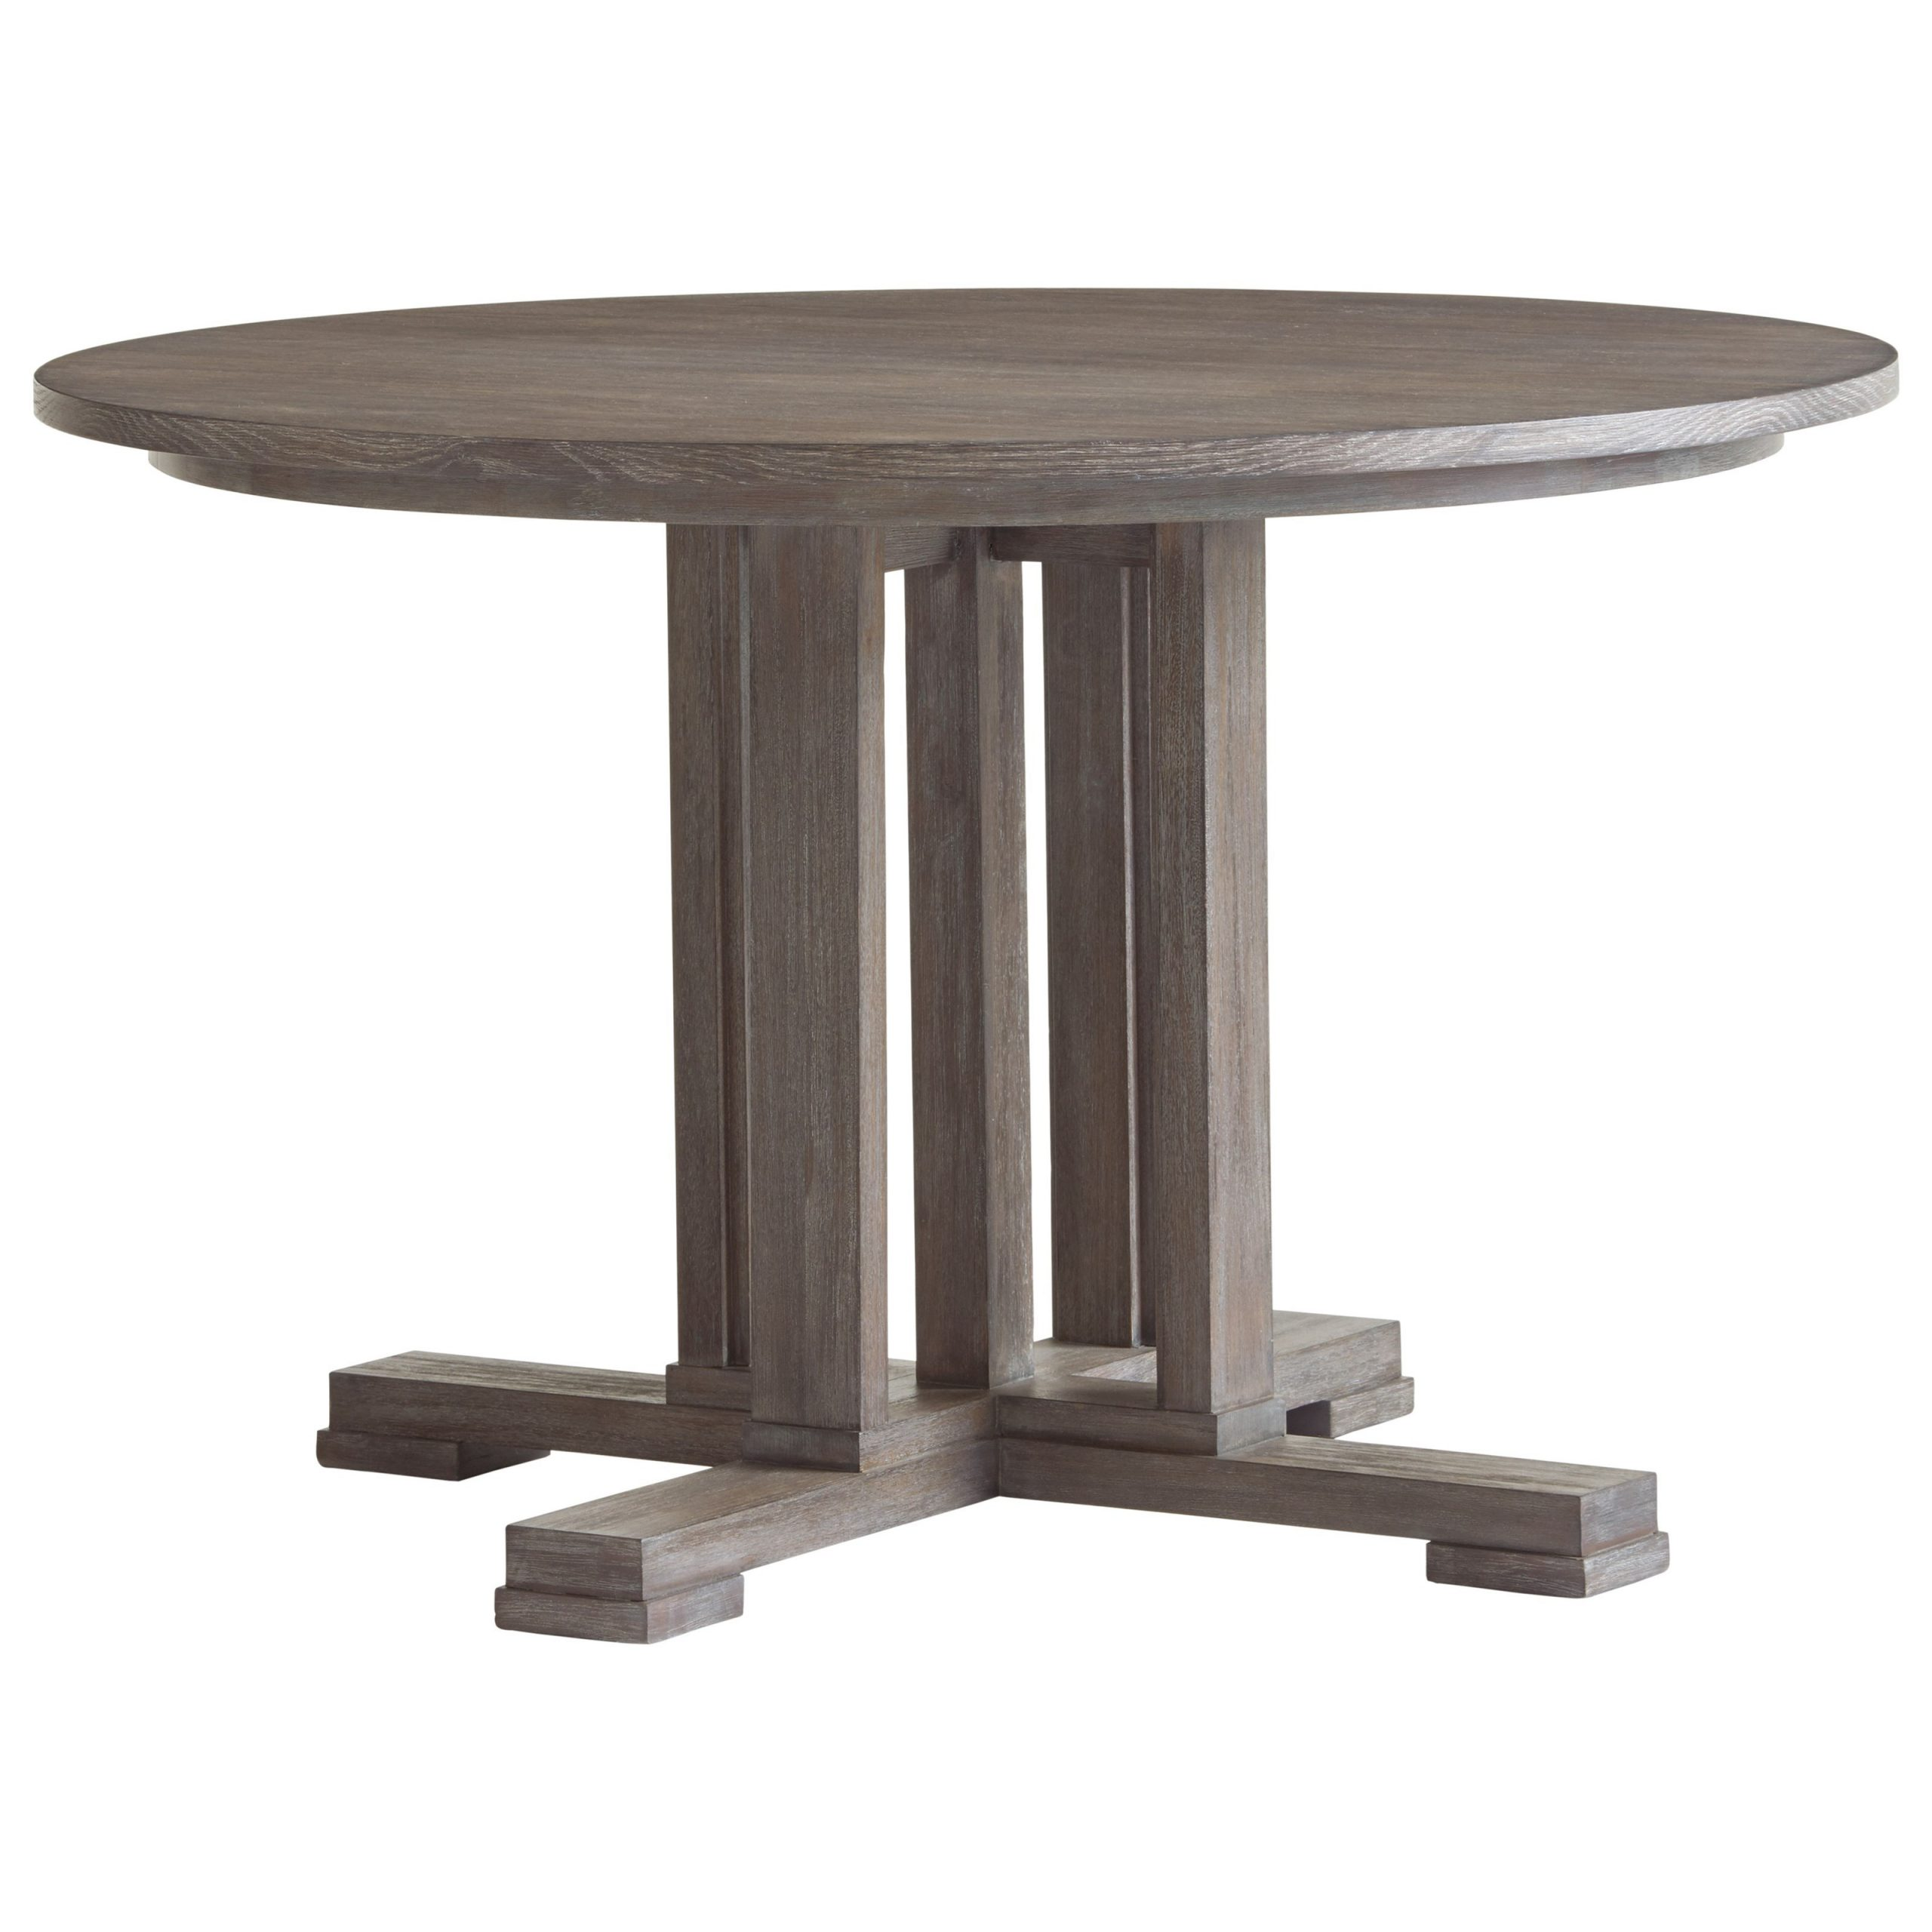 "Lexington Santana Montrose 48"" Round Dining Table 